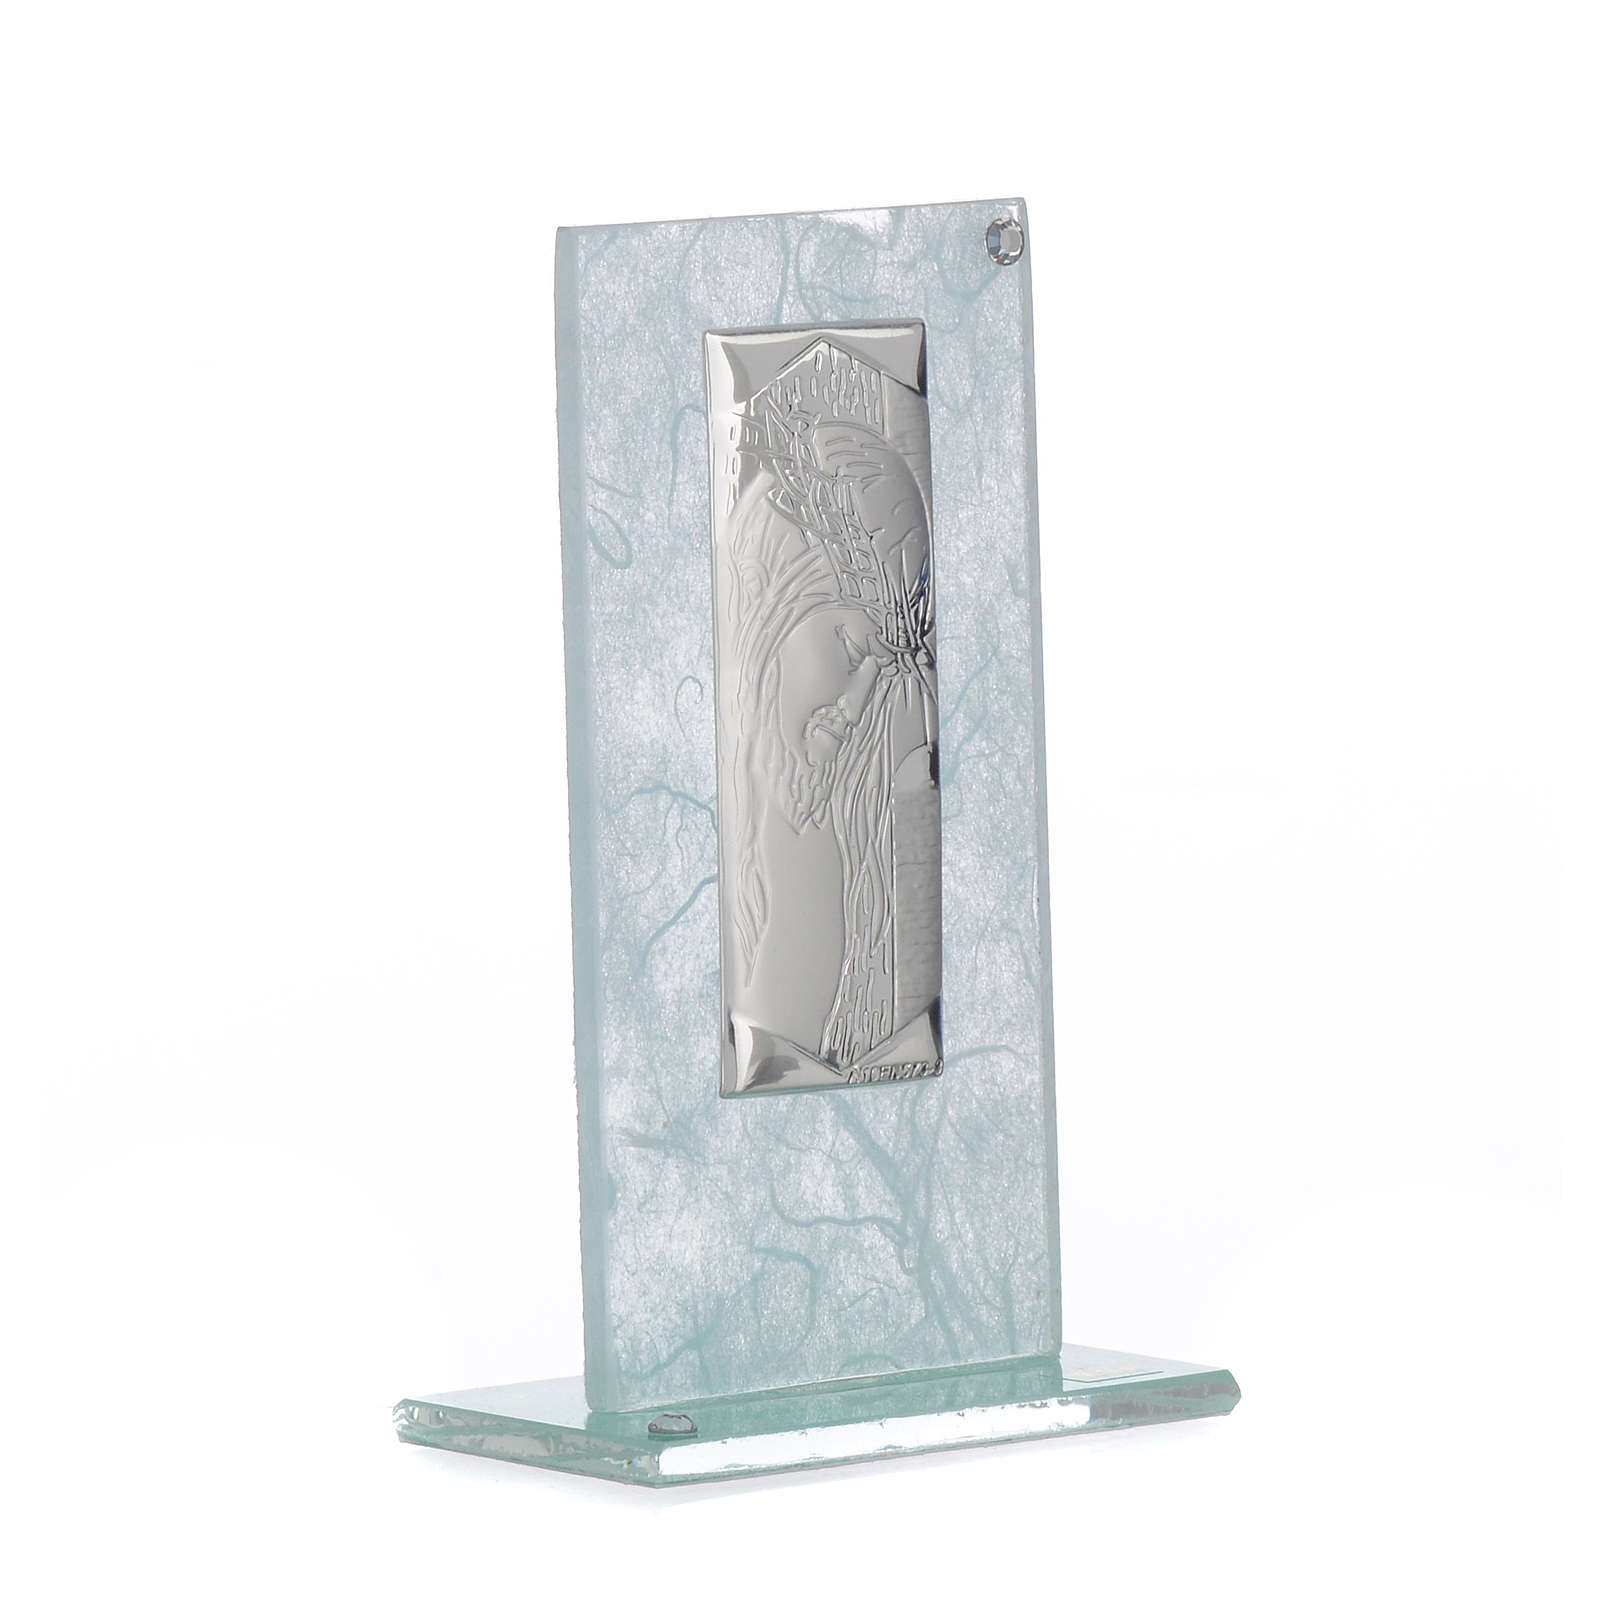 Favour with image of Christ in silver and sky blue glass 11.5cm 3